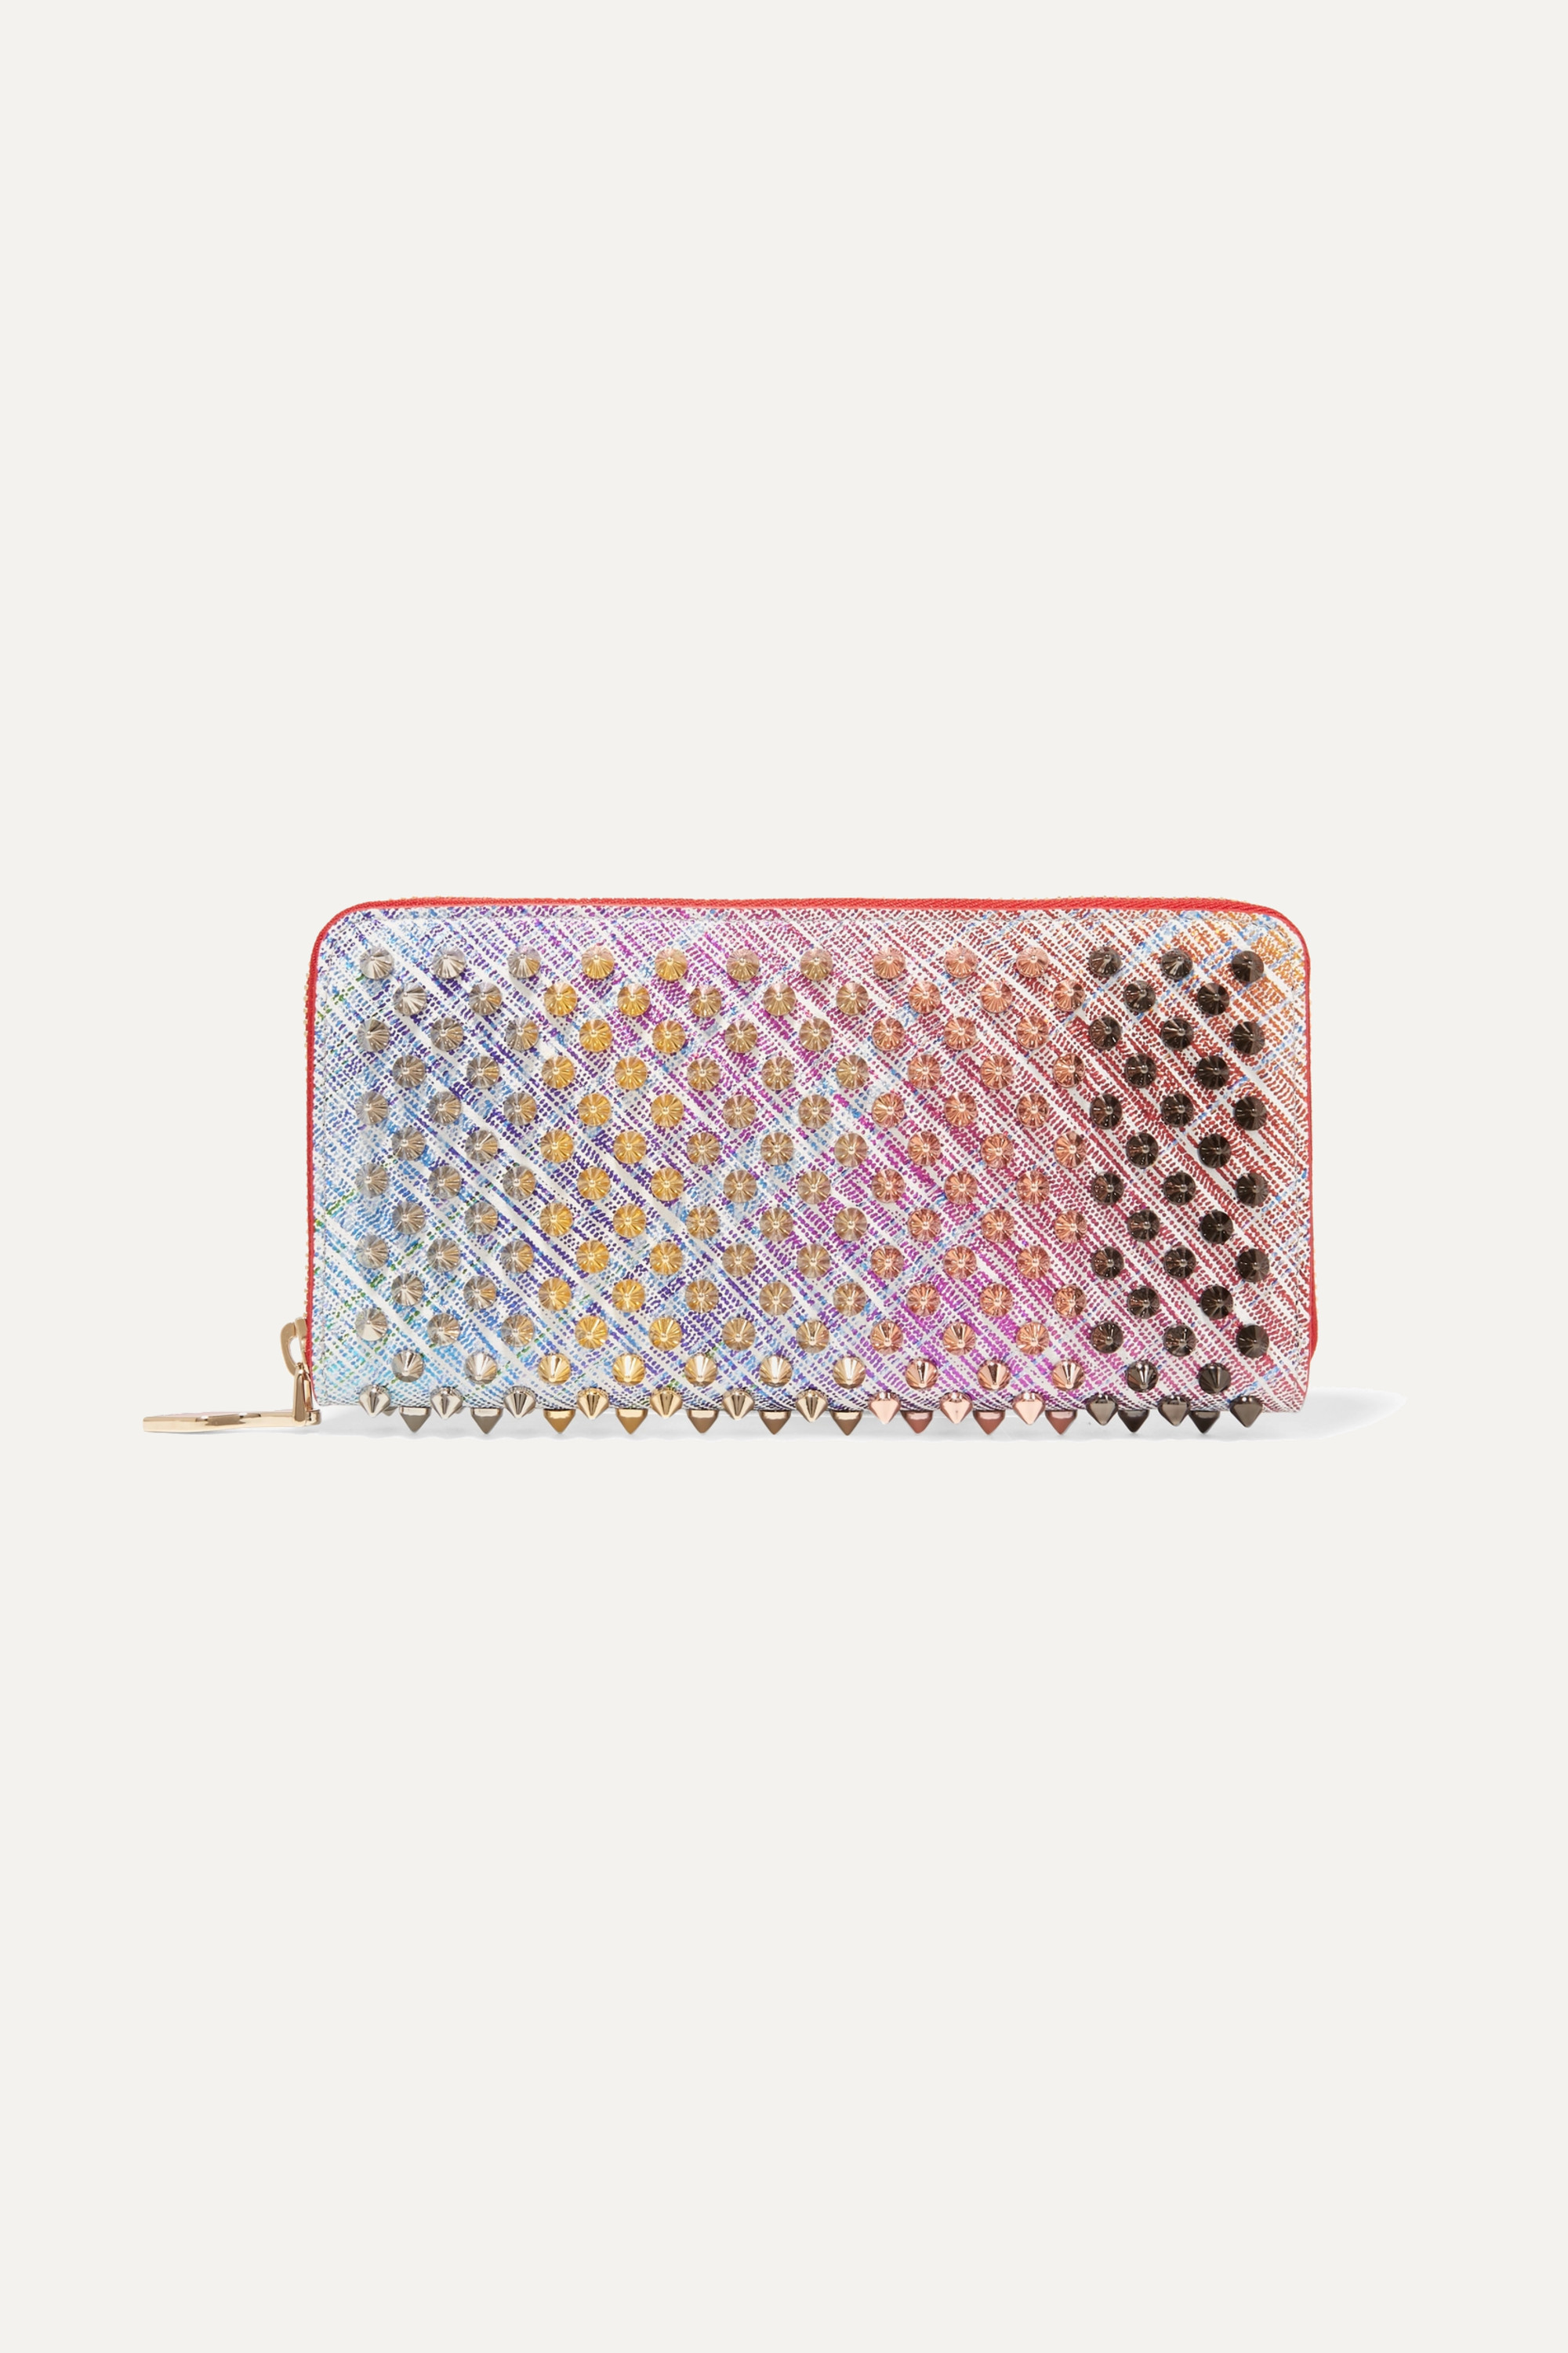 Christian Louboutin Panettone spiked metallic suede continental wallet